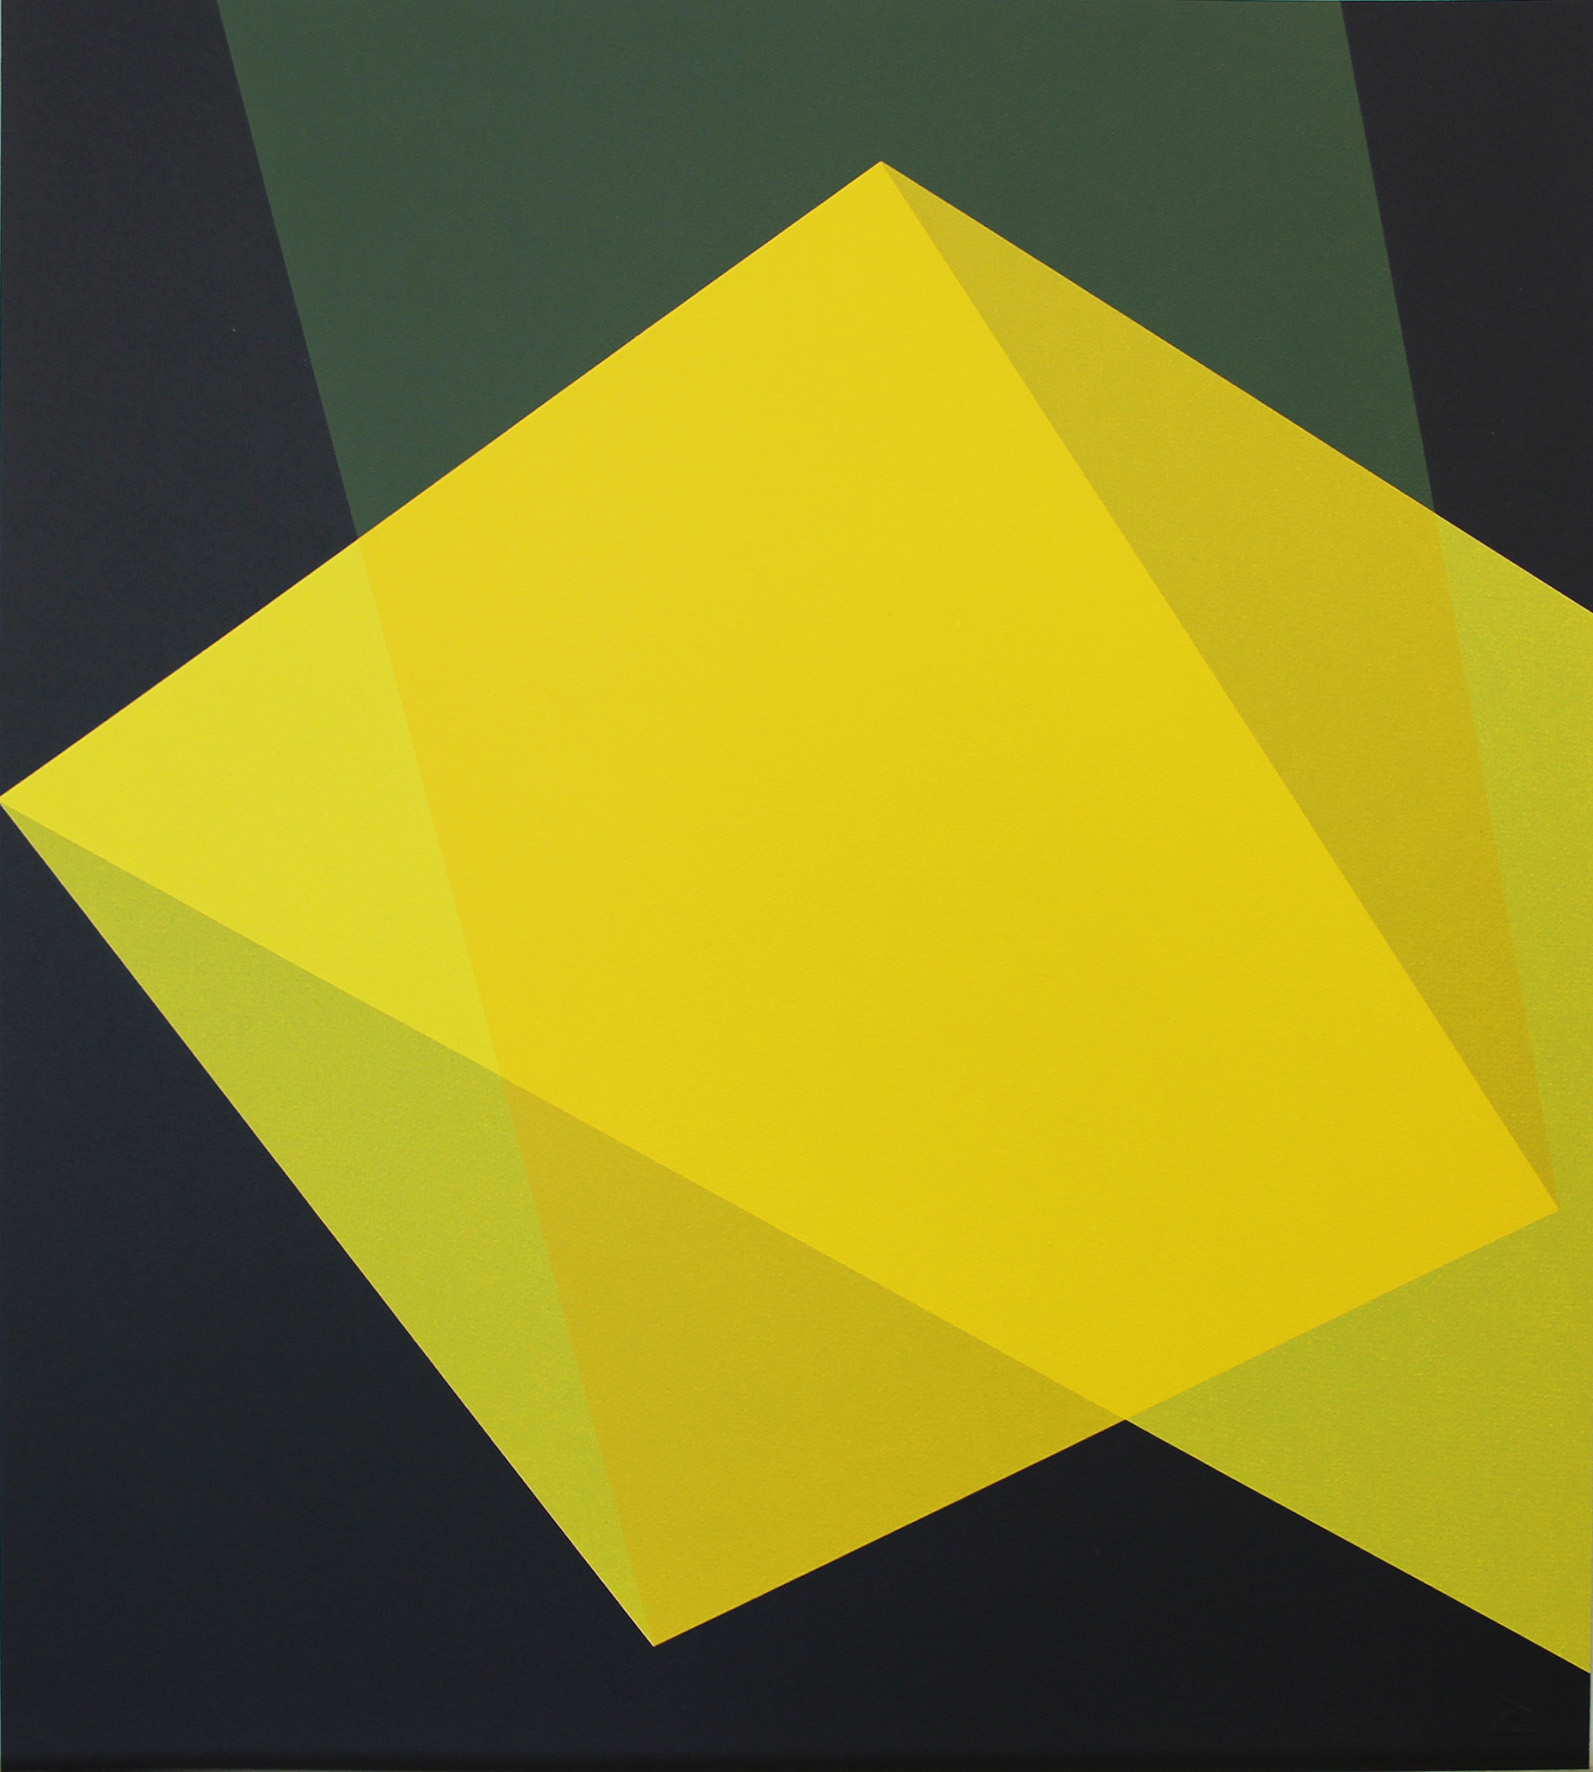 Willard Boepple, Quartet Yellow    Date:  2017  Size (cm - unframed):  56 x 62.9   Technique:  Screenprint  Materials:  Somerset Velvet 300gsm  Edition size:  20  Publisher:  The Print Studio  Copyright:  The Artist   P.O.A.